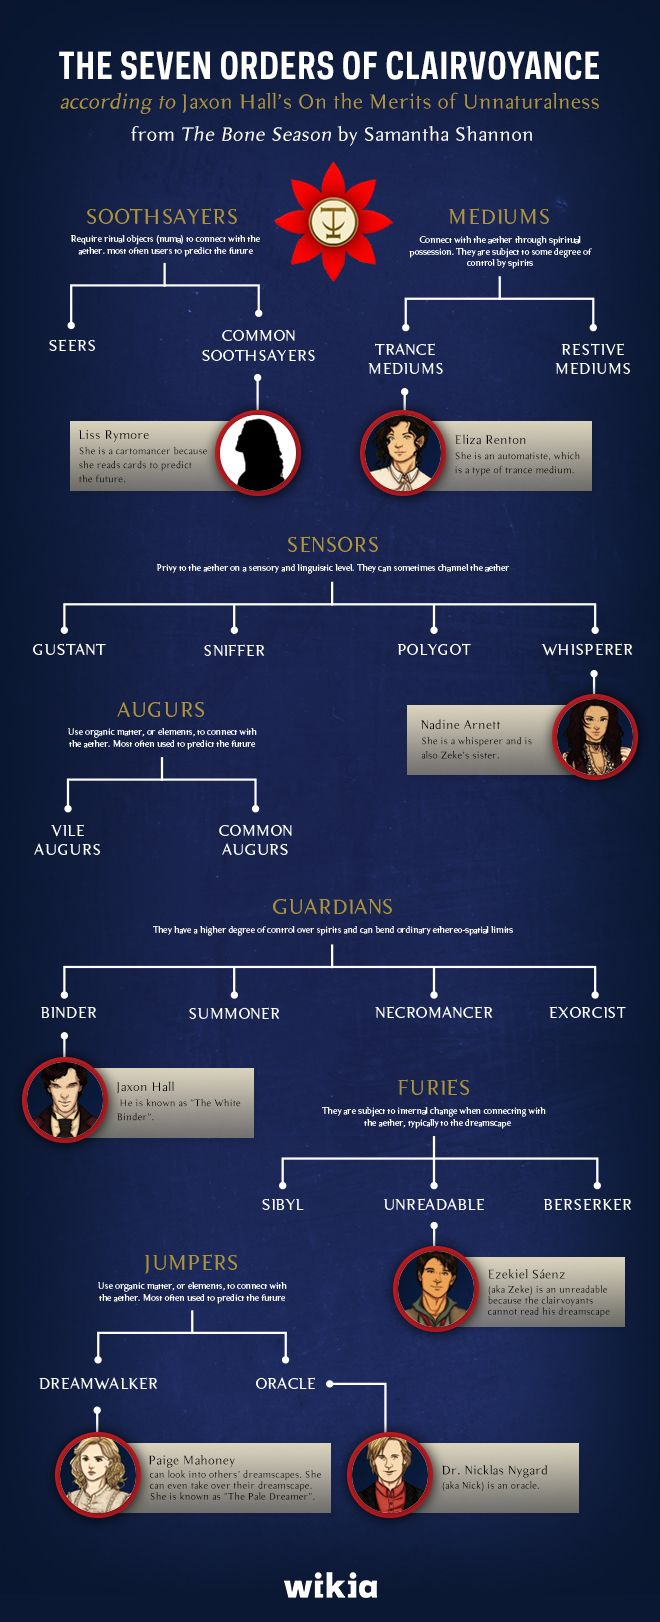 wikiayabooks: Check out our original The Bone Season clairvoyance chart! This is a great aid to reading the book.